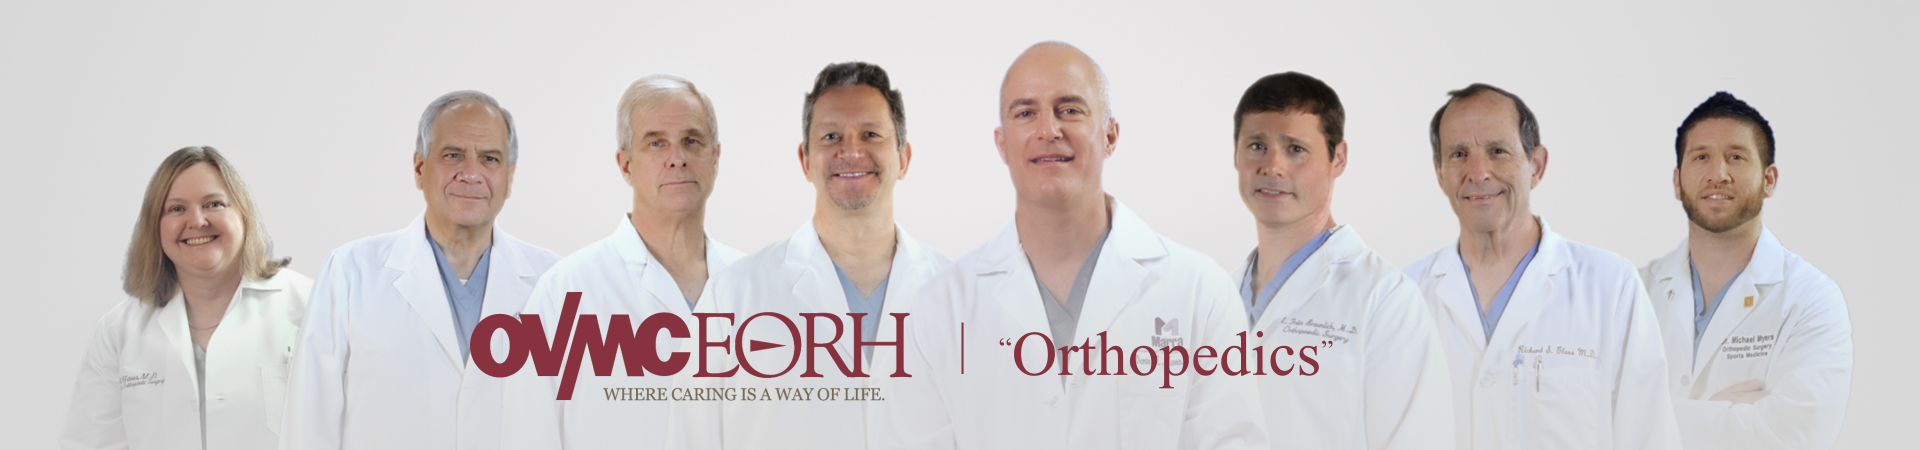 OVMC-orthopedics